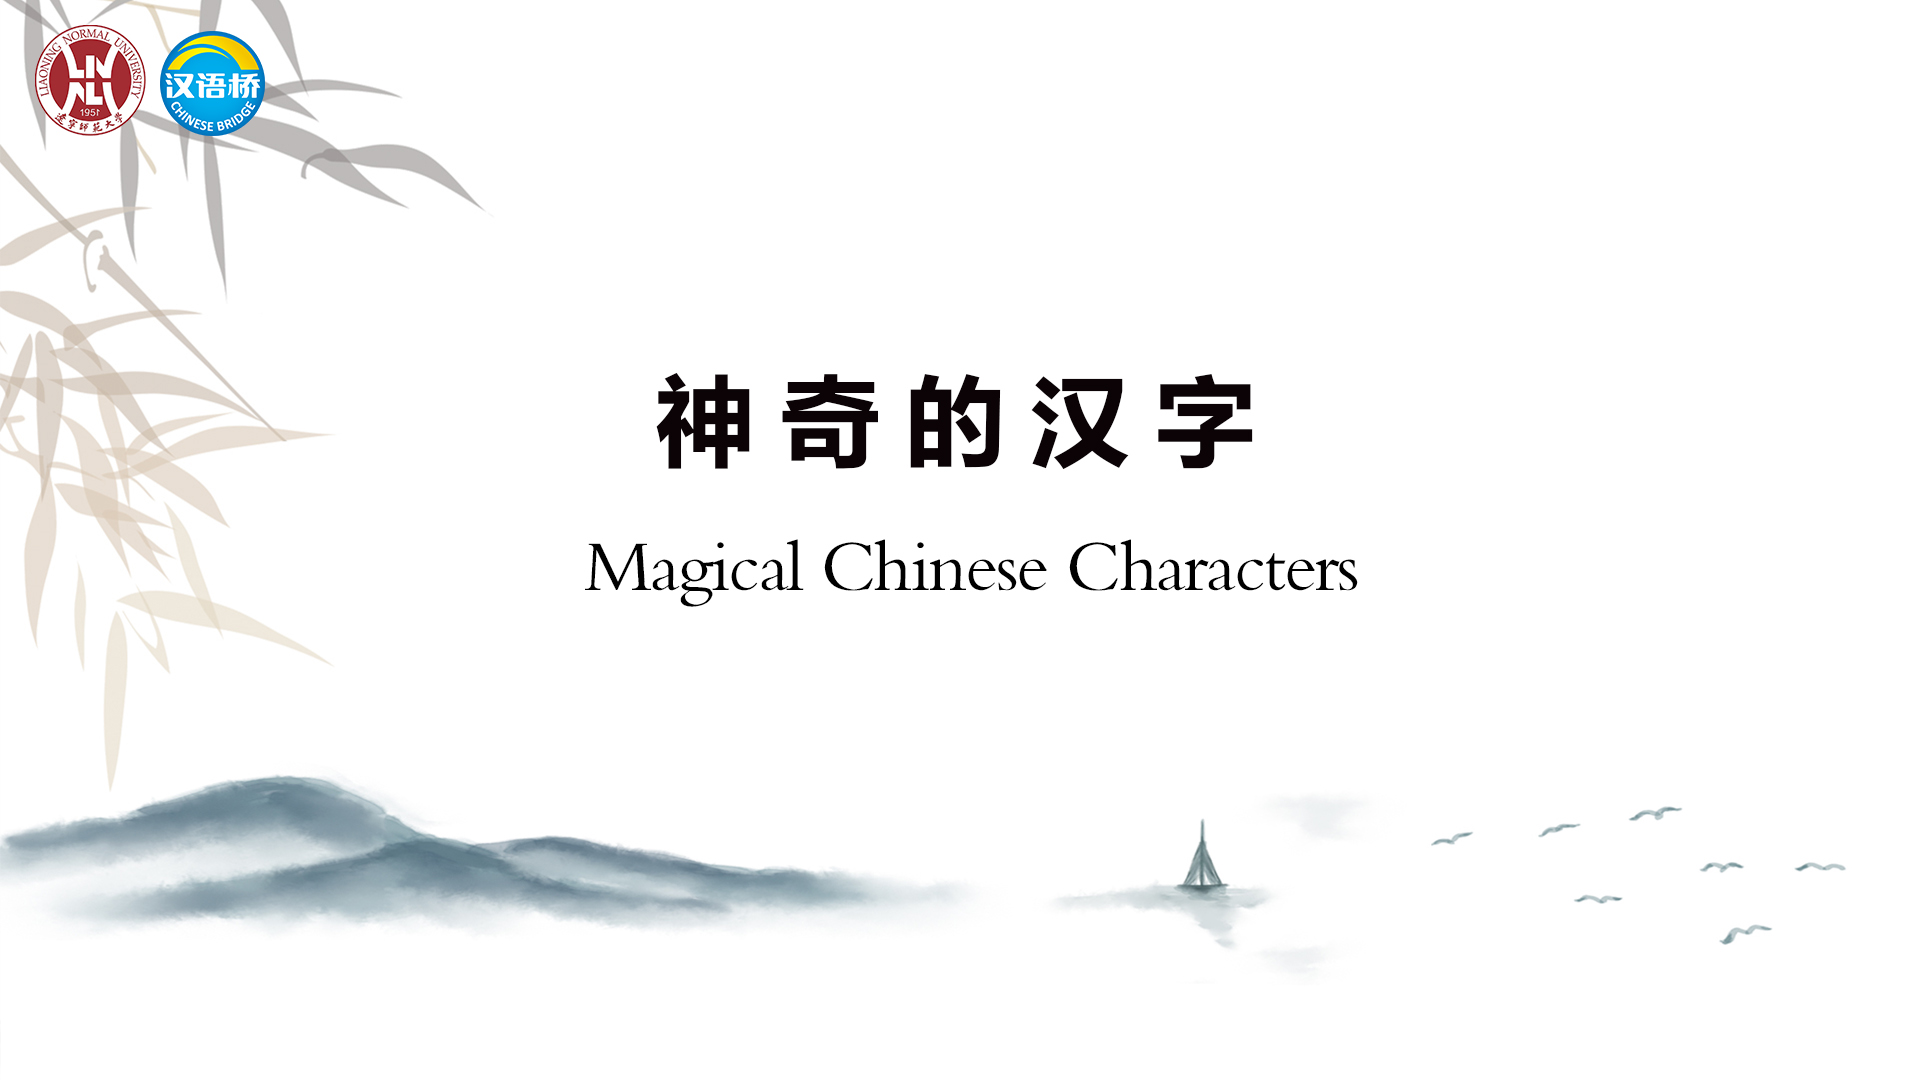 Magical Chinese Characters